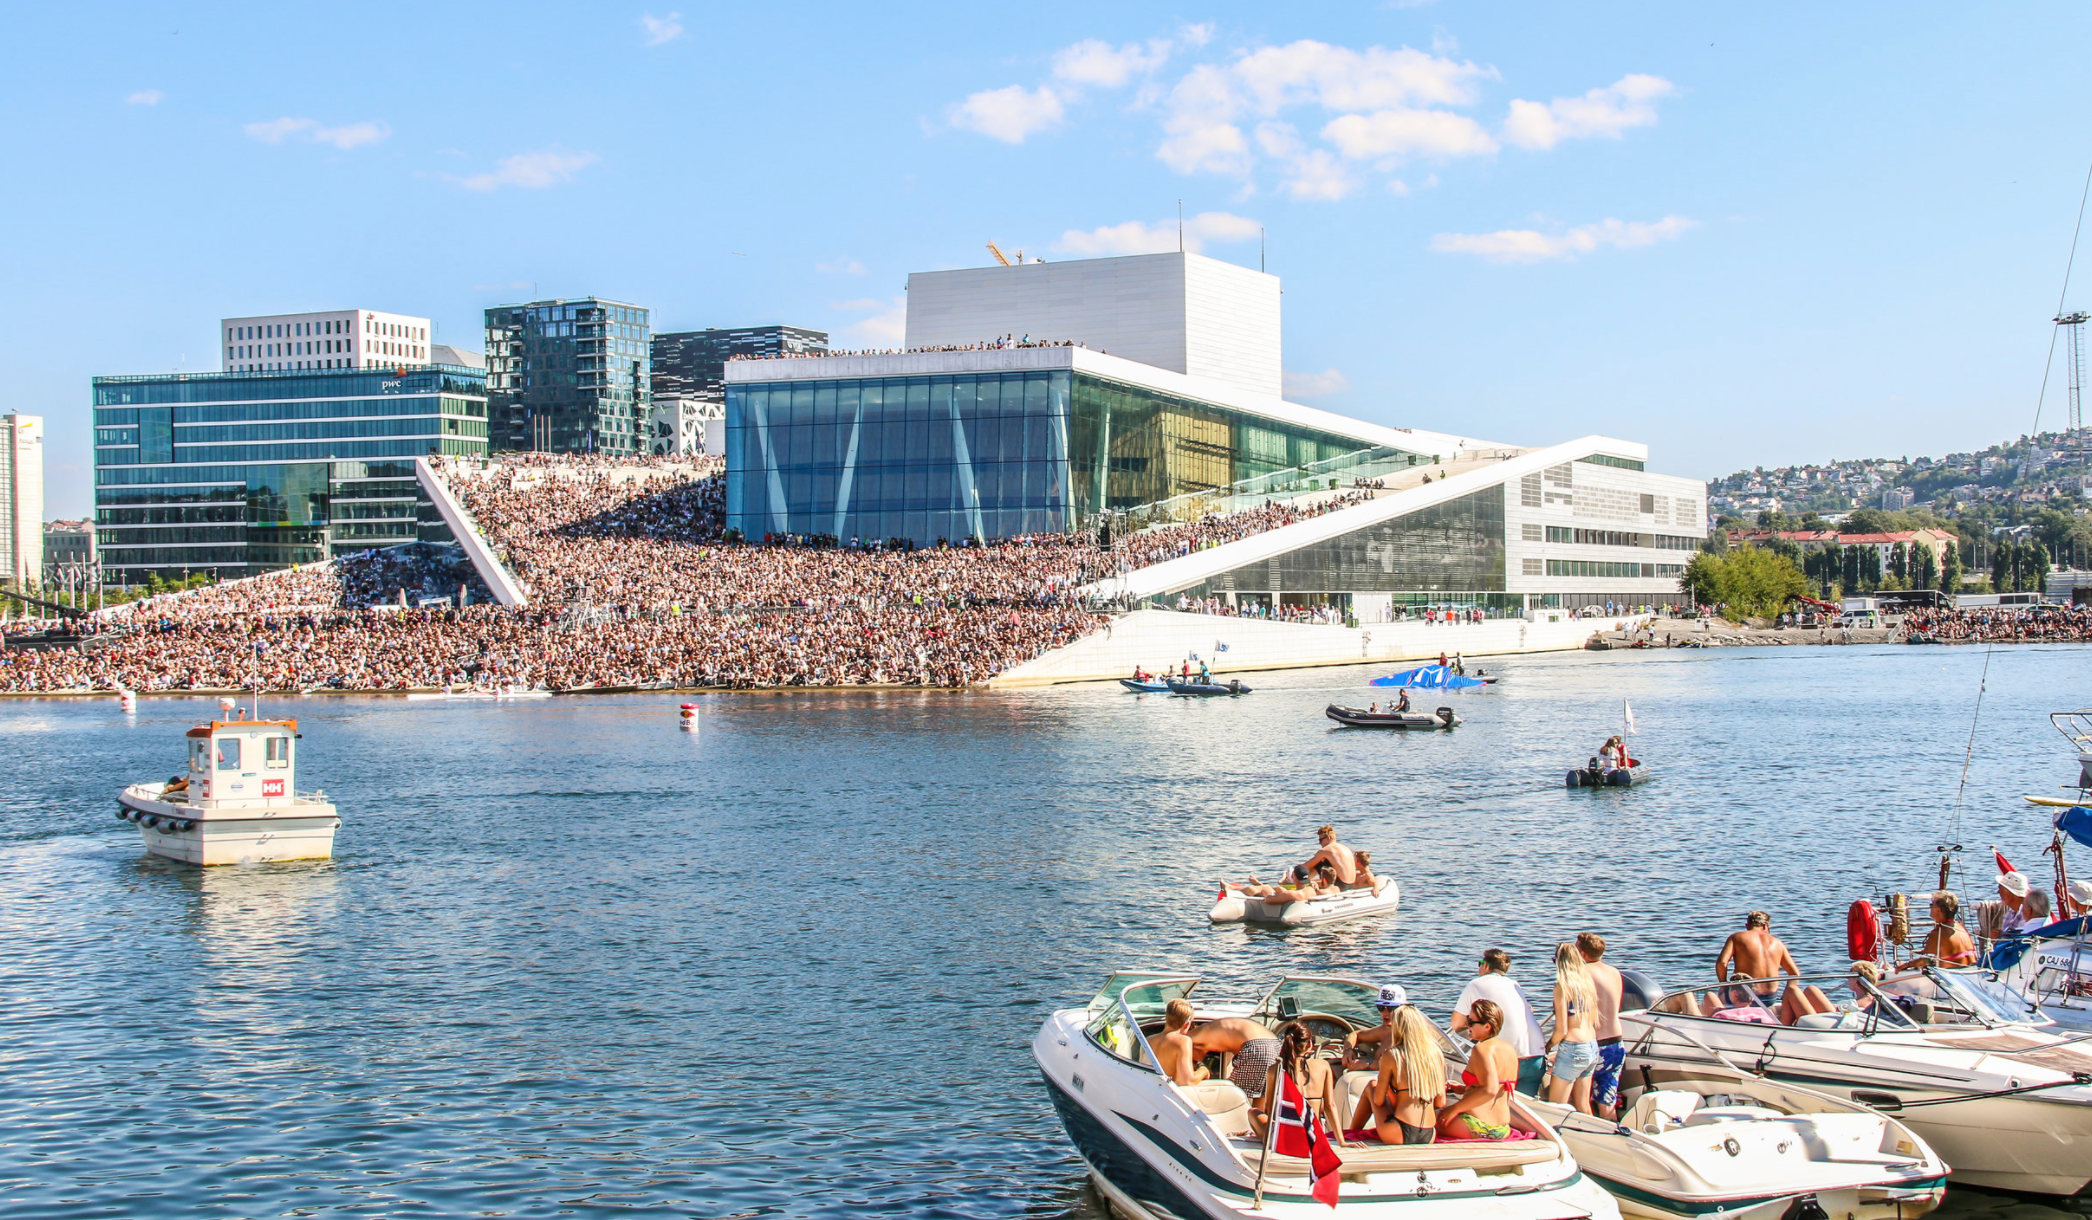 ARENA OSLO   A collaborative business development strategy combining five industries — culture, creative, knowledge, travel and tourism, food and beverage, towards creating and strengthening the event industry of Oslo, creating a smart event city.  Advisory - Einar Kleppe Holthe  arenaoslo.no